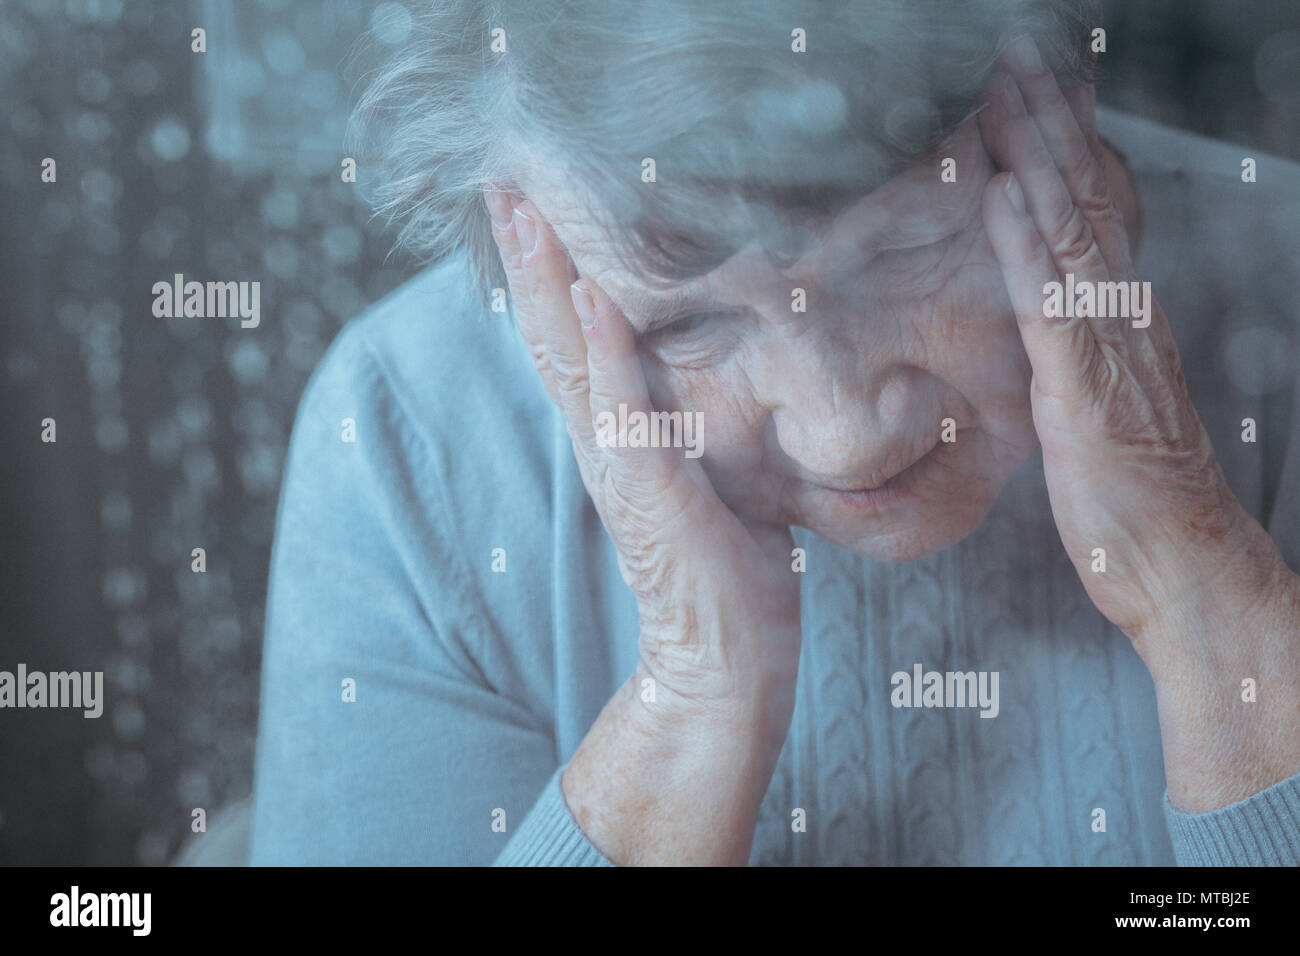 Senior woman having headache, holding head with her hands - Stock Image